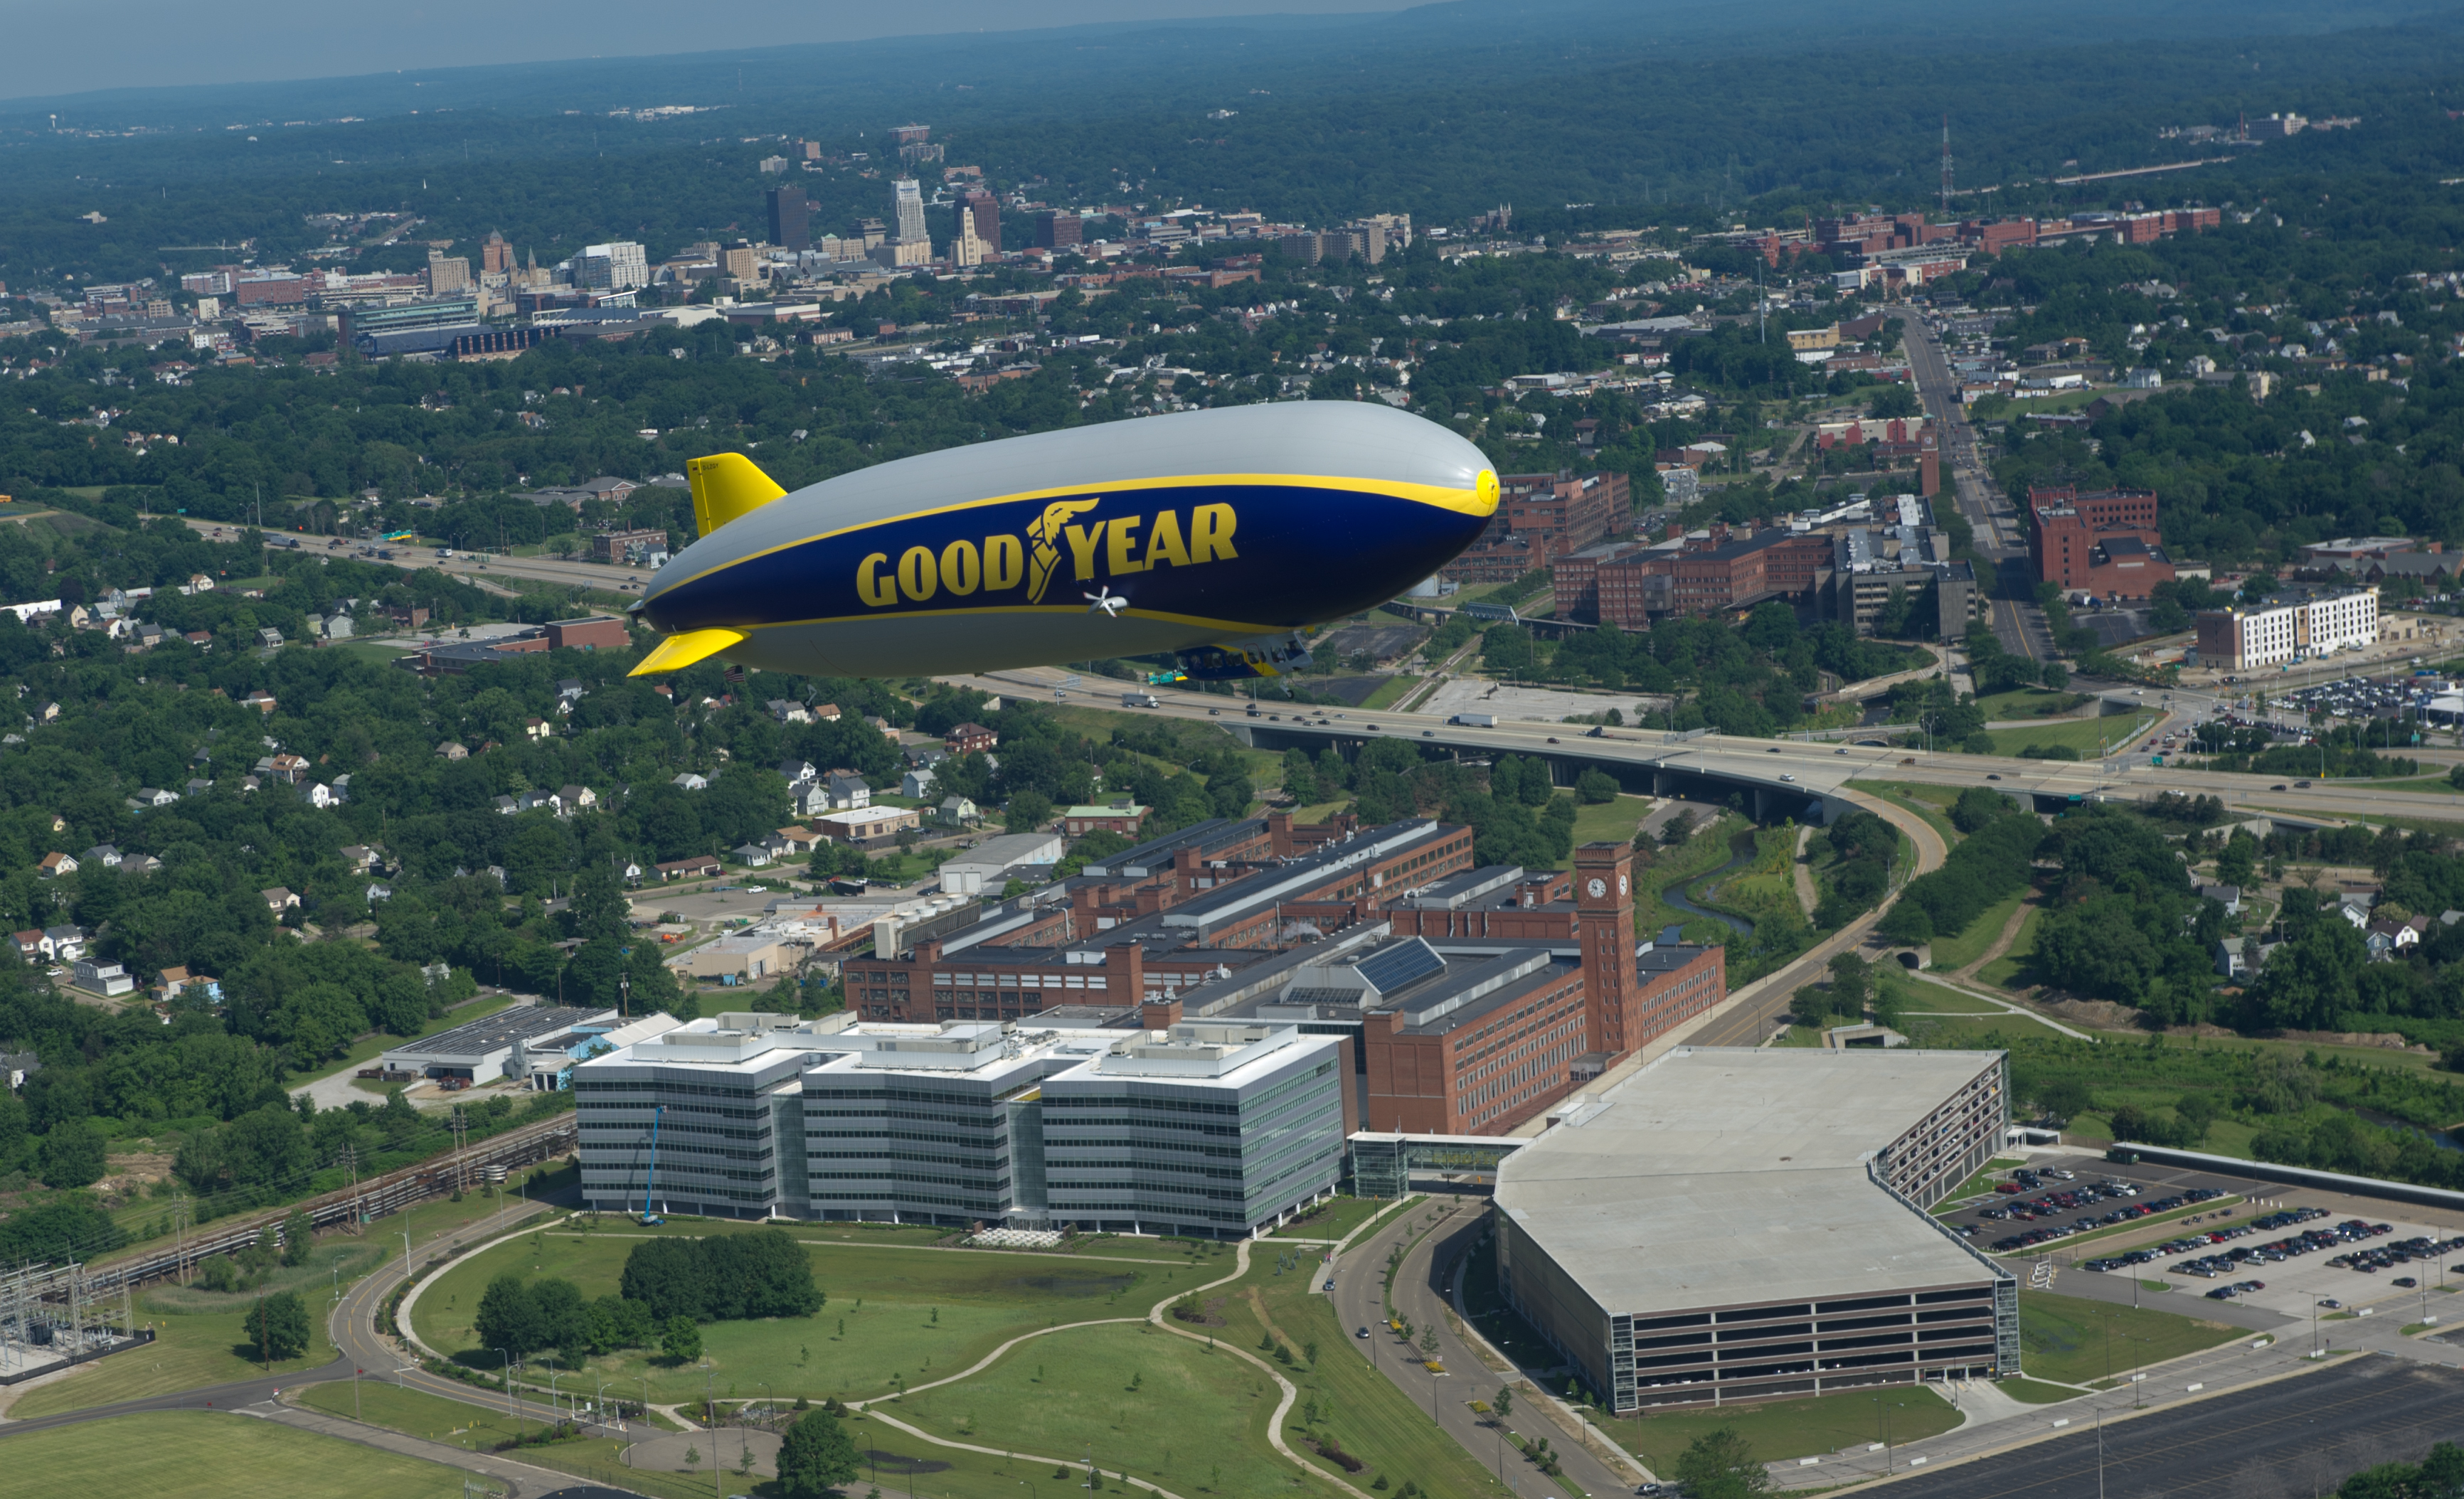 Goodyear's global HQ earns LEED Gold rating